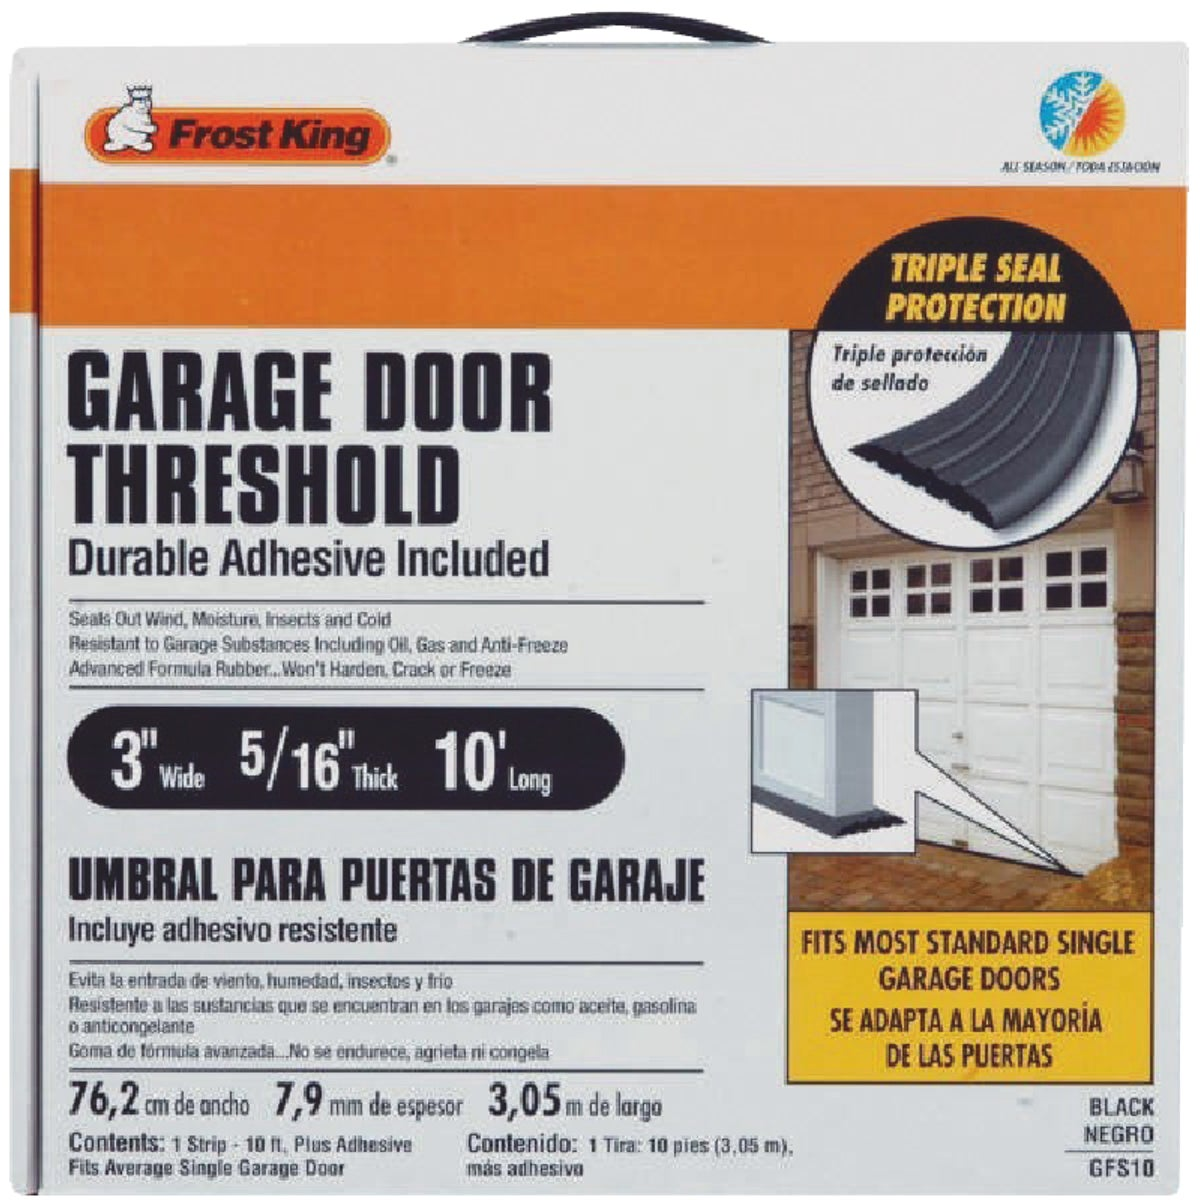 Thermwell Prods. Co. 10' GARAGE DR FLOOR SEAL GFS10